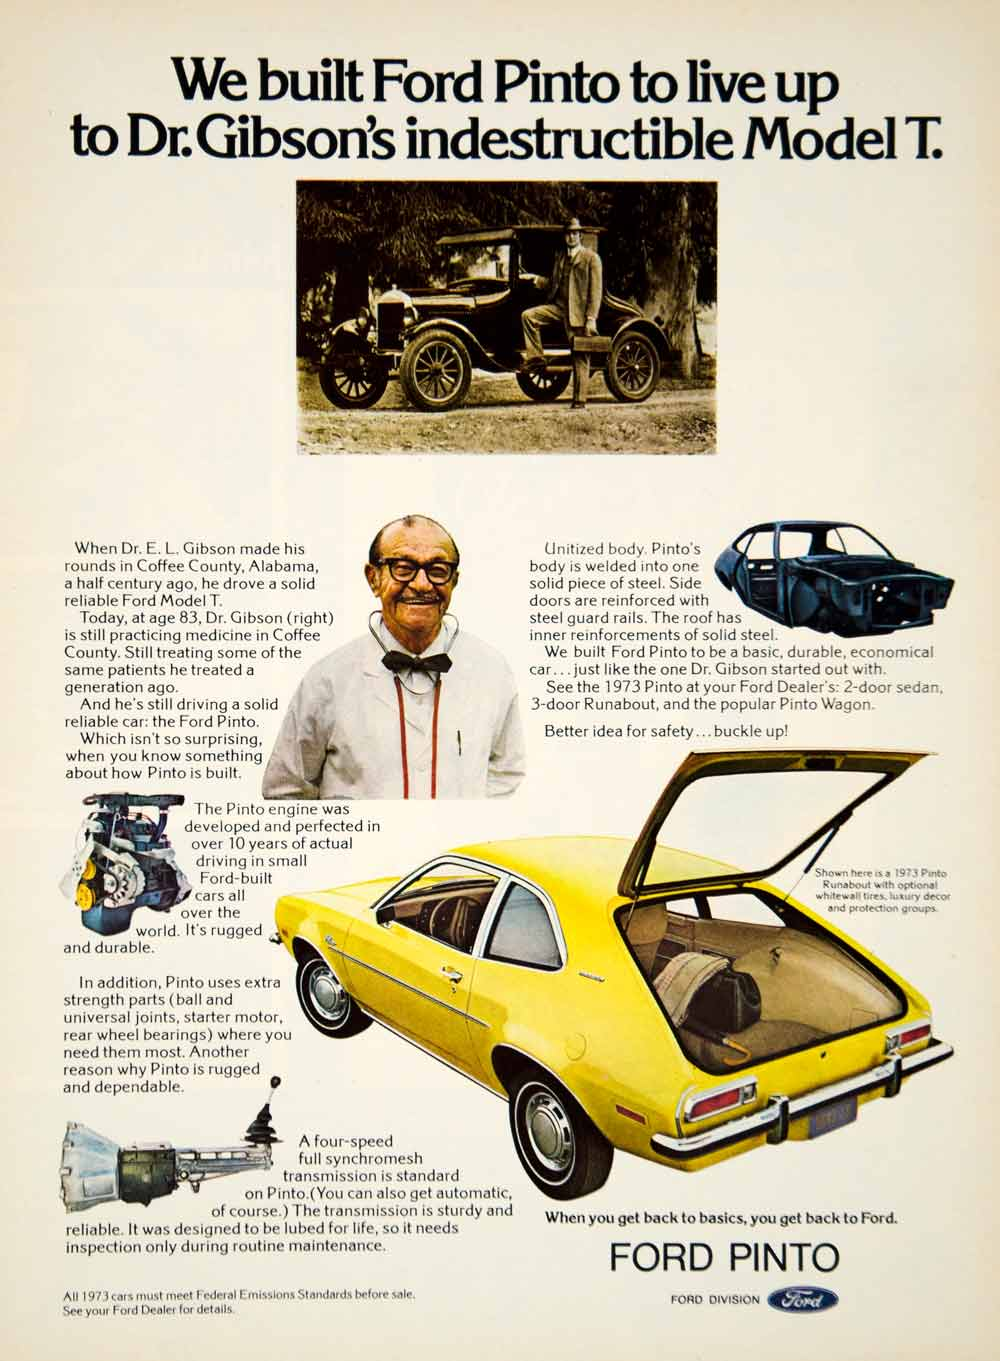 1972 Ad 1973 Ford Pinto 3 Door Hatchback Runabout Model T EL Gibson YCD8